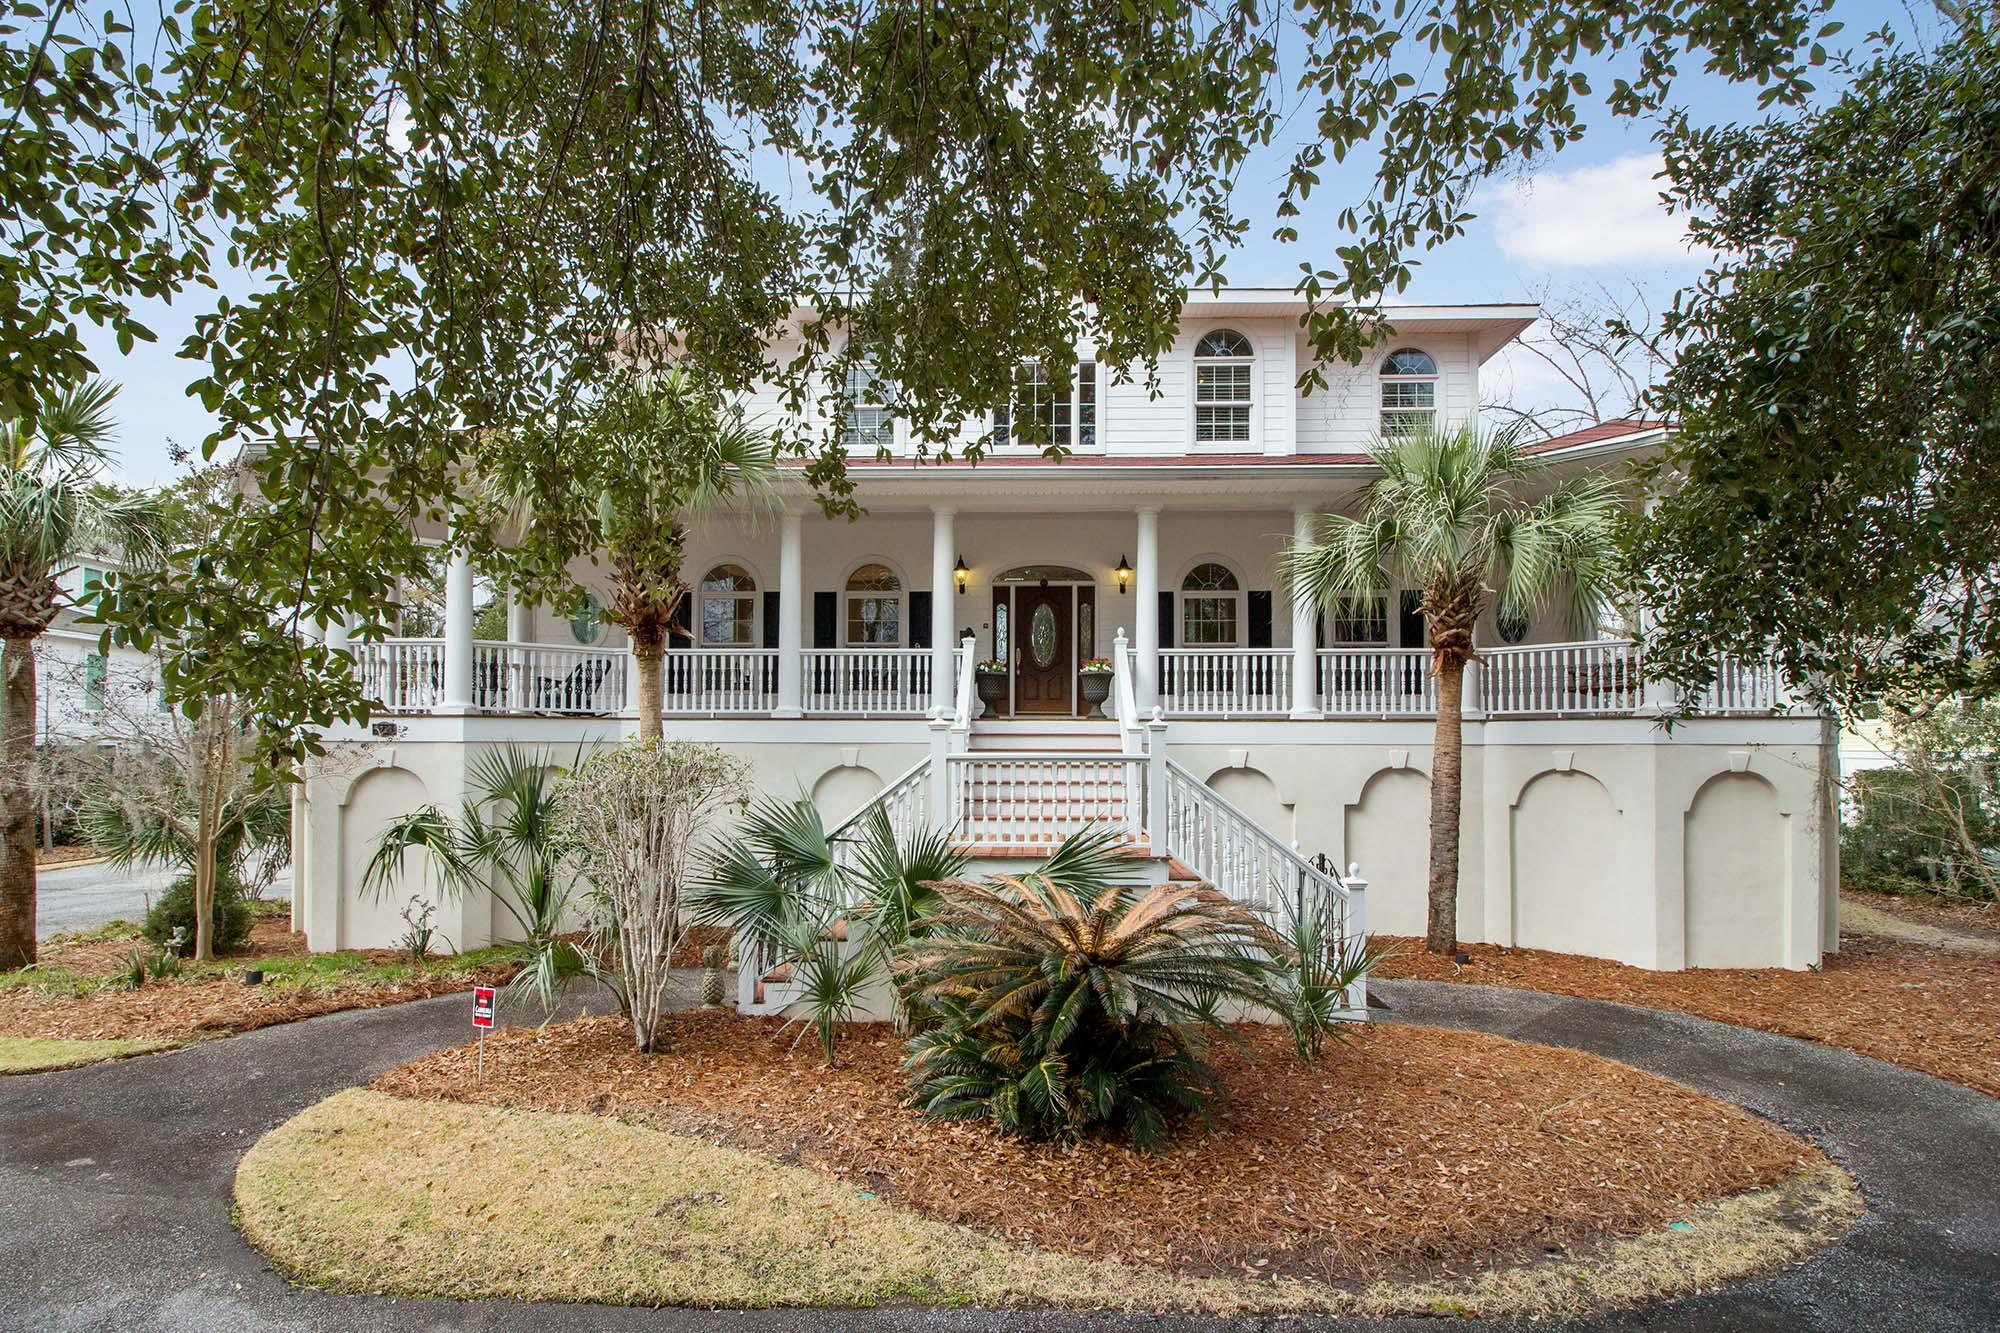 Home for sale 3713 Station Point Court, Darrell Creek, Mt. Pleasant, SC